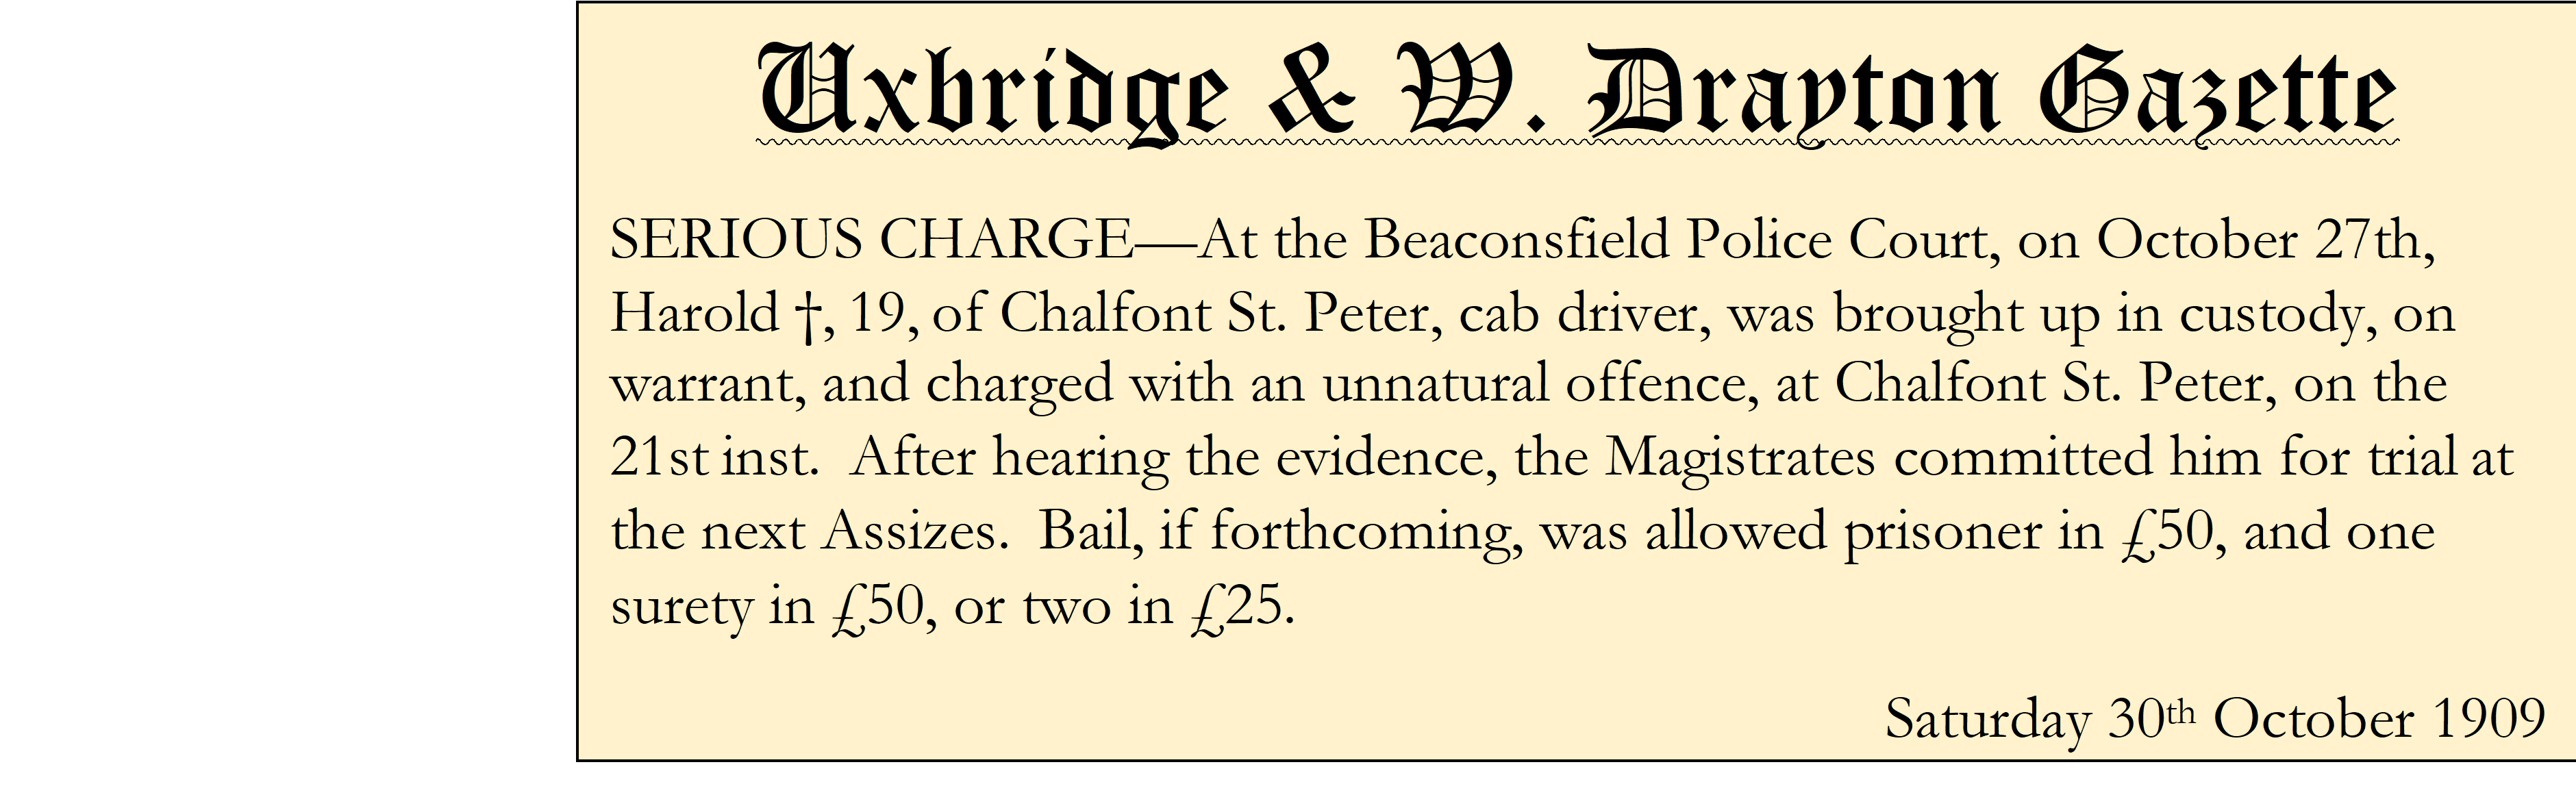 Uxbridge & W. Drayton Gazette SERIOUS CHARGE—At the Beaconsfield Police Court, on October 27th, Harold †,19,of Chalfont St. Peter, cab driver, was brought up in custody, on warrant, and charged with an unnatural offence, at Chalfont St. Peter, on the 21stinst. After hearing the evidence, the Magistrates committed him for trialat the next Assizes. Bail, if forthcoming, was allowed prisoner in £50, and one surety in £50, or two in £25. Saturday 30th October 1909